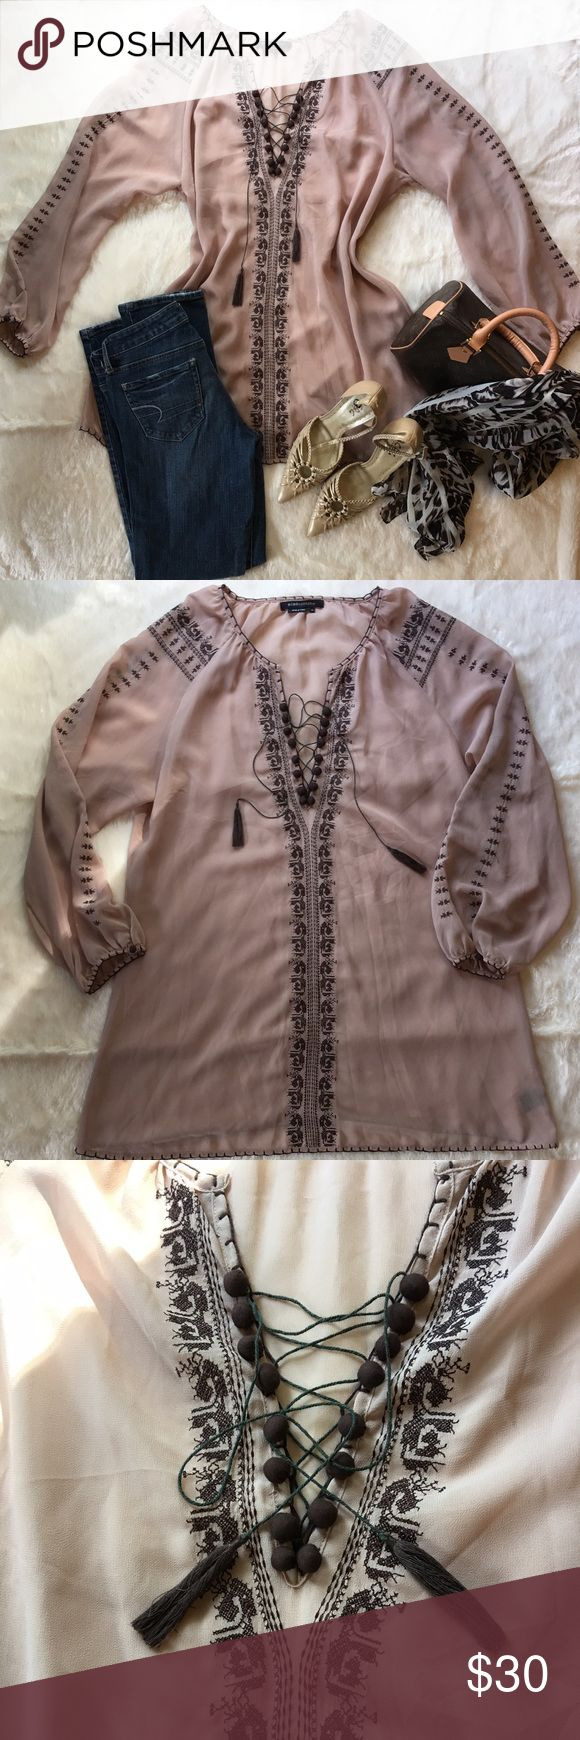 """BCBGMaxAzria top Gorgeous blush colored BGBC Maxazria tunic. Lace up neckline adorned in chocolate colored tiny pop pops. Sticking is in the coordinating chocolate color. Selves are also stocked and finished off with a tiny pop pop. There is a small rip by the neckline as shown in the picture. It measures 30"""" long. Bust measures 44"""". BCBGMaxAzria Tops Tunics"""